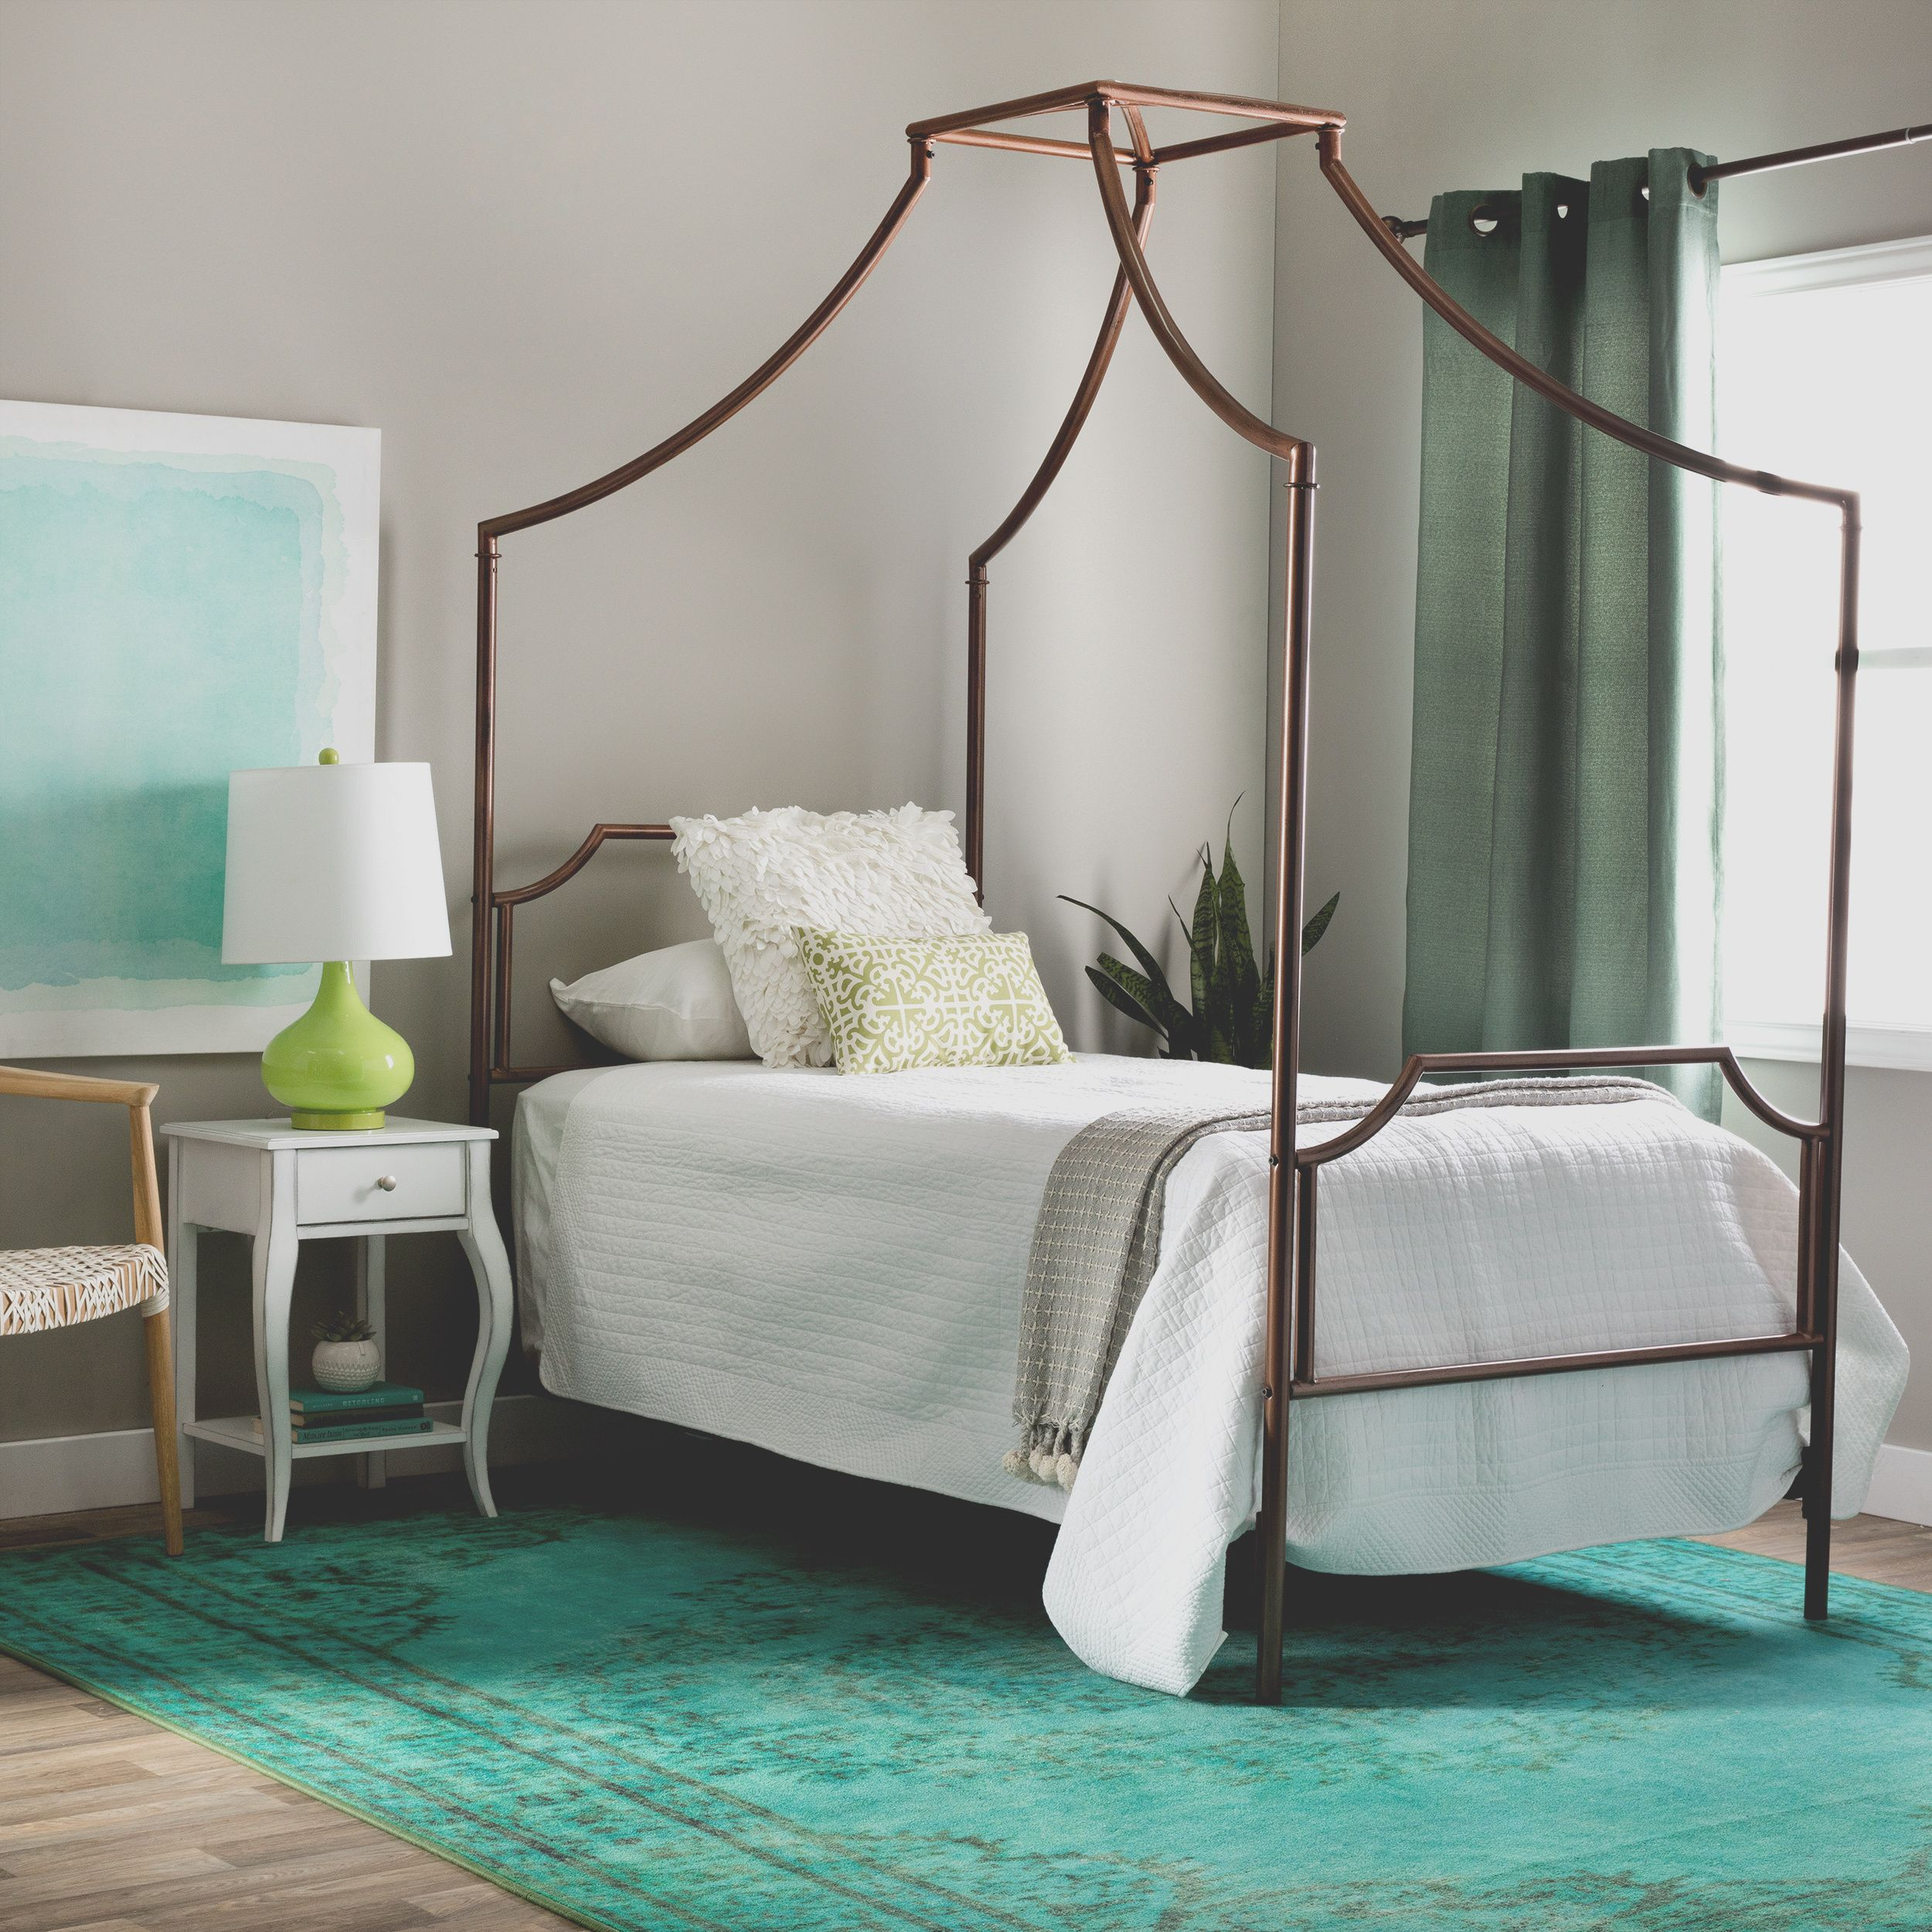 what little girl hasnt dreamed about her own canopy bed this beautiful twin